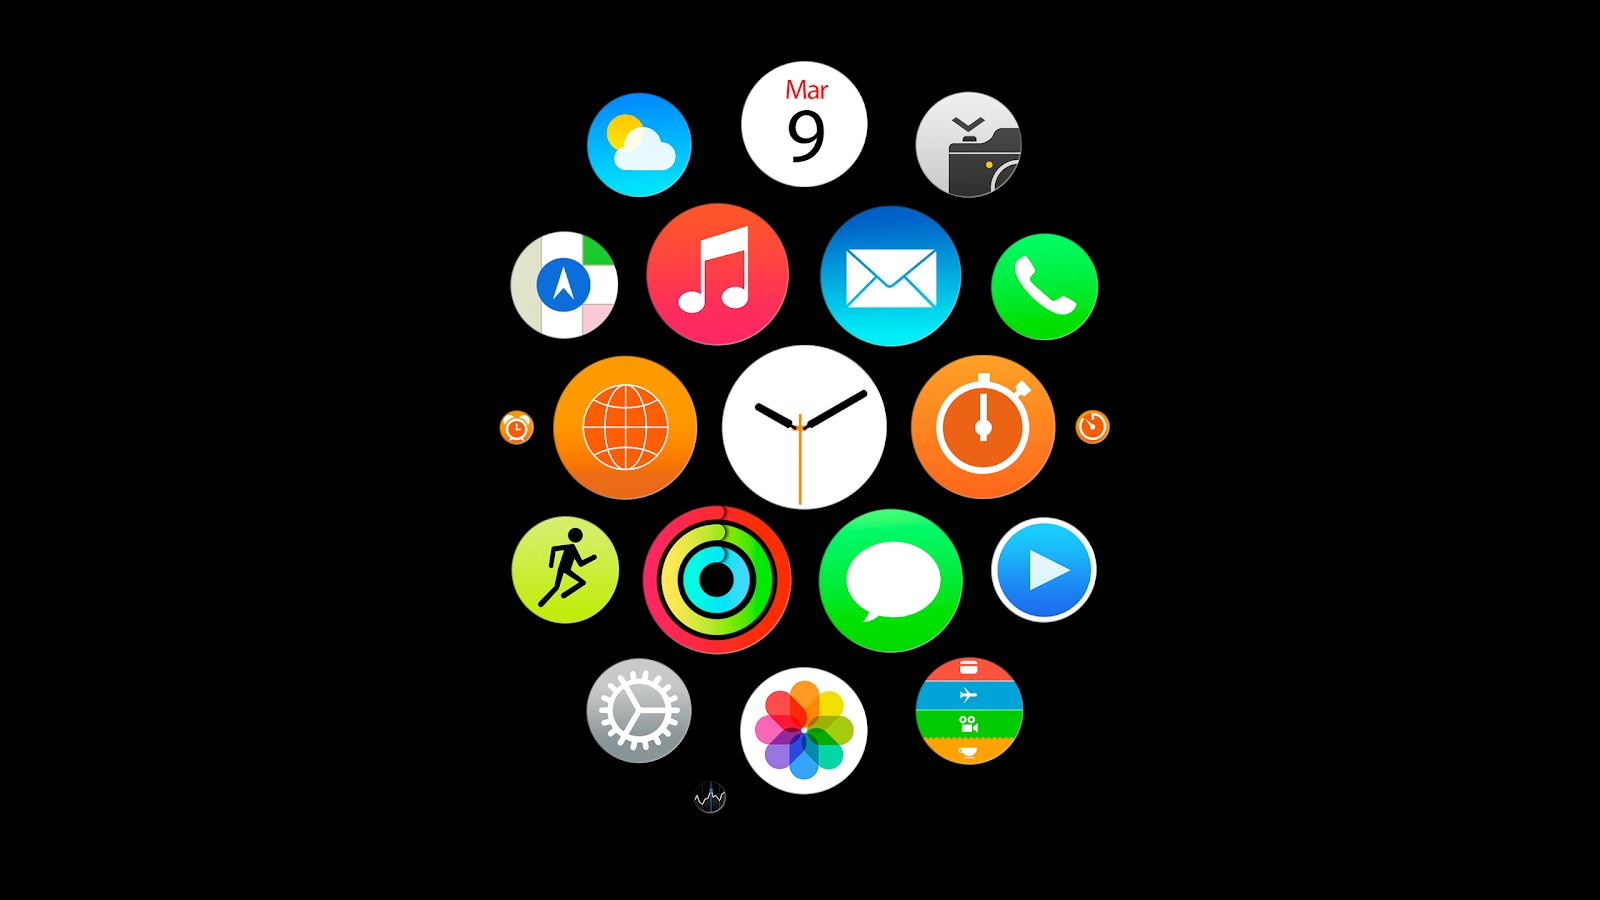 Apple Watch App Icons Wallpapers For Iphone Ipad And Desktop Total Update